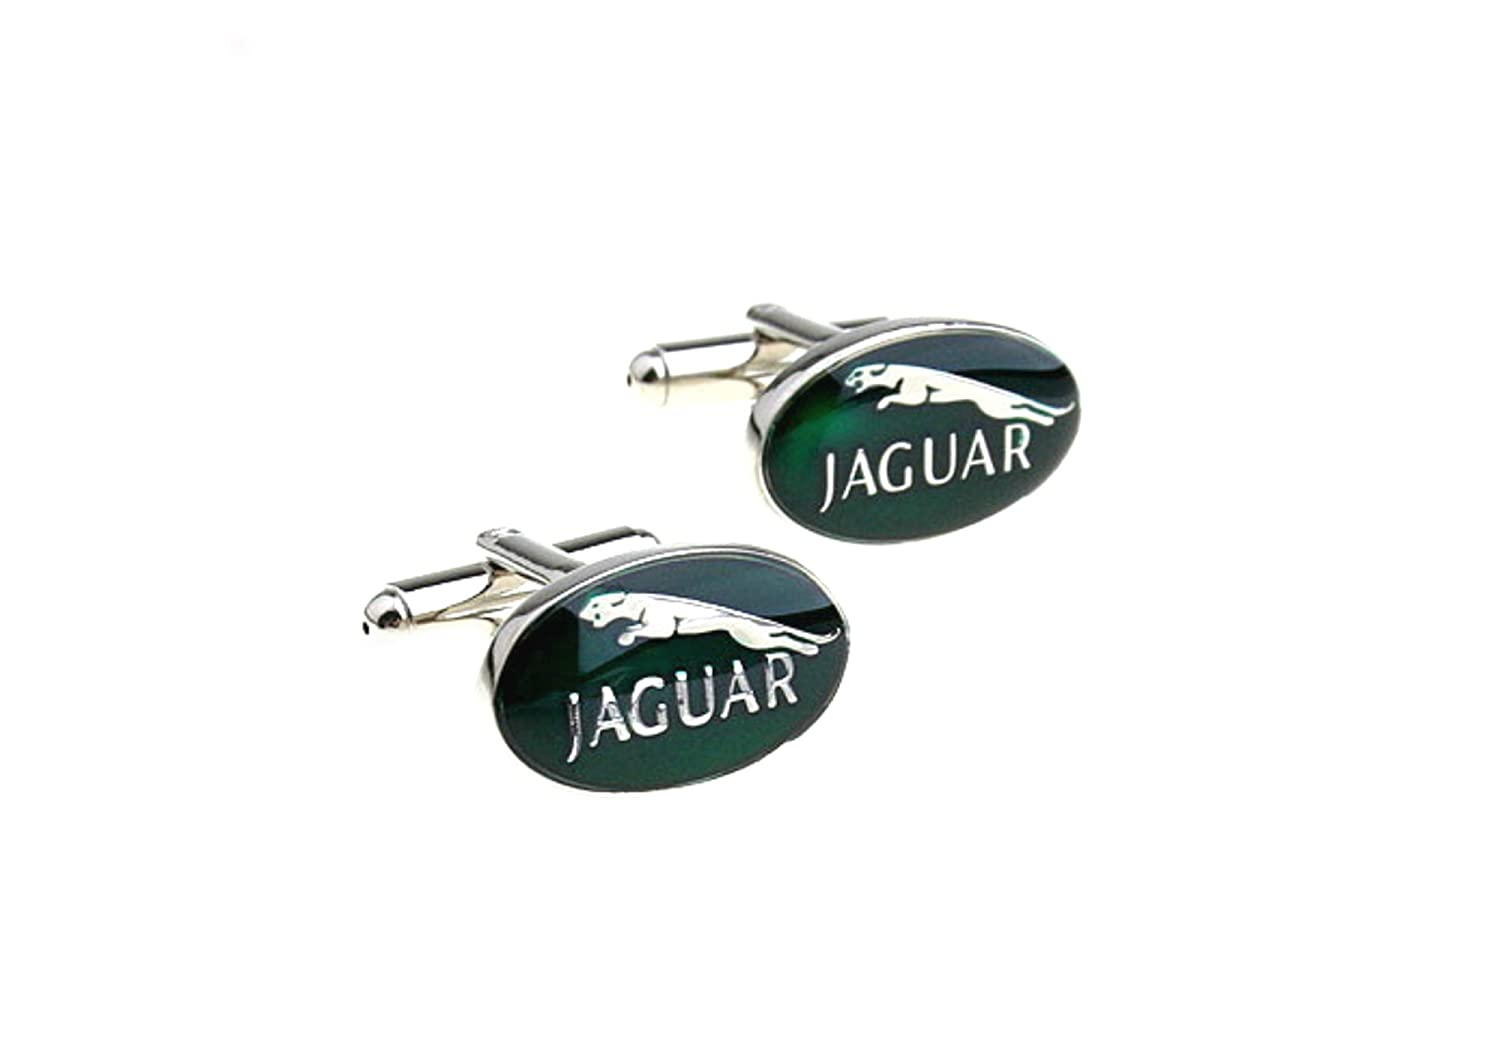 Jaguar Logo Auto Cufflinks w/Gift Box By Athena 123456